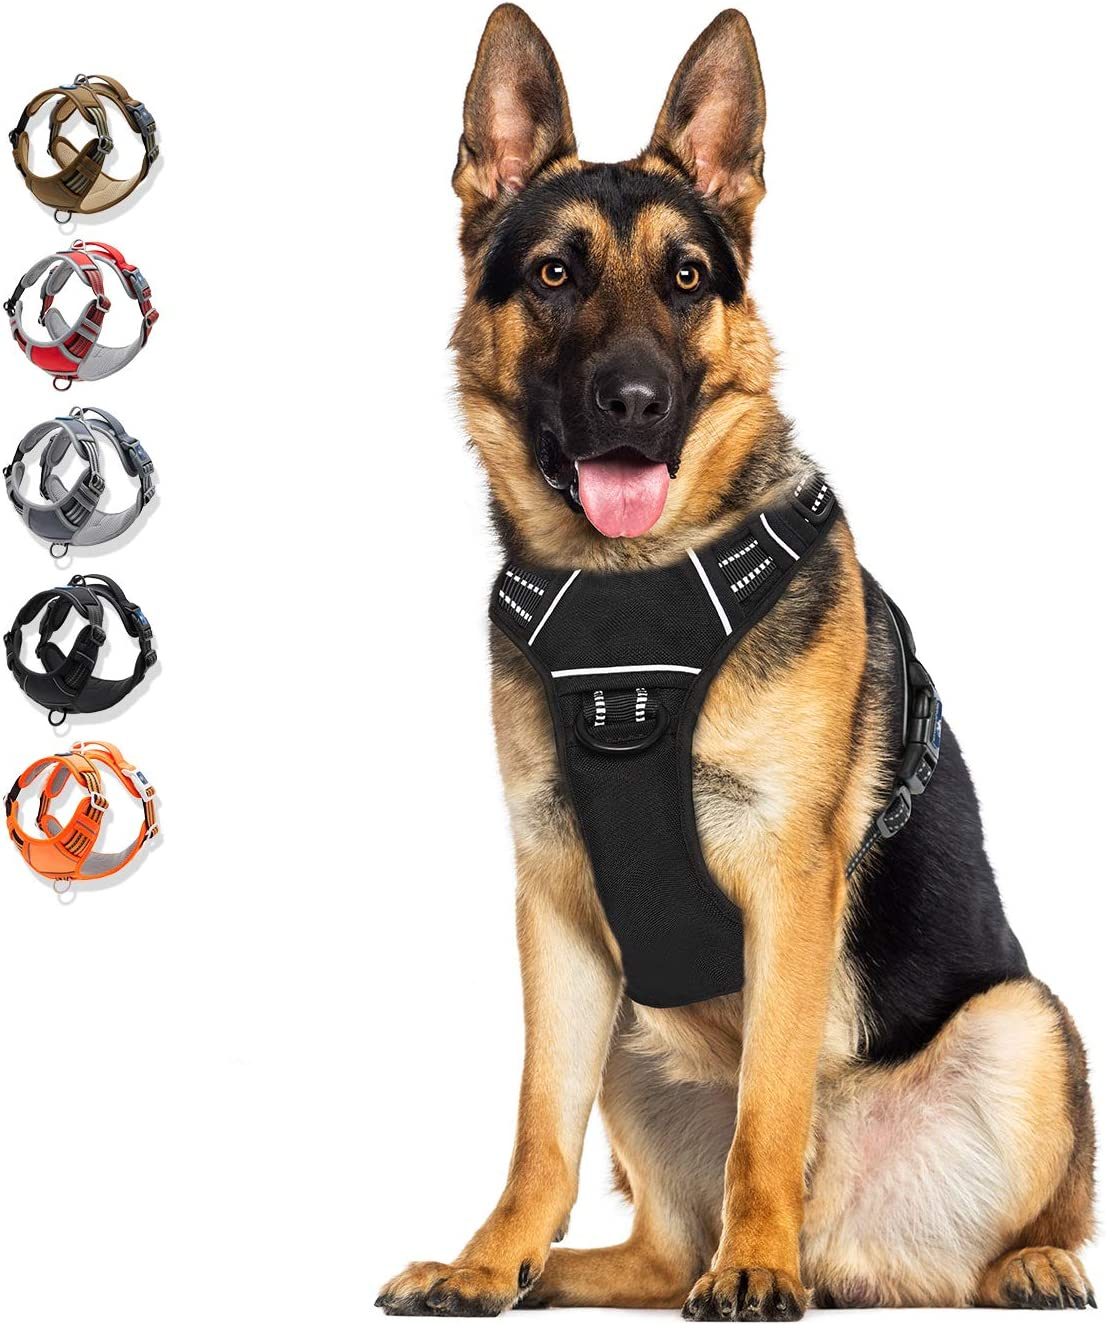 WALKTOFINE Dog Harness No Pull Reflective, Comfortable Harness with Handle,Fully Adjustable Pet Leash Vest for Small Medium Large Dog Breed